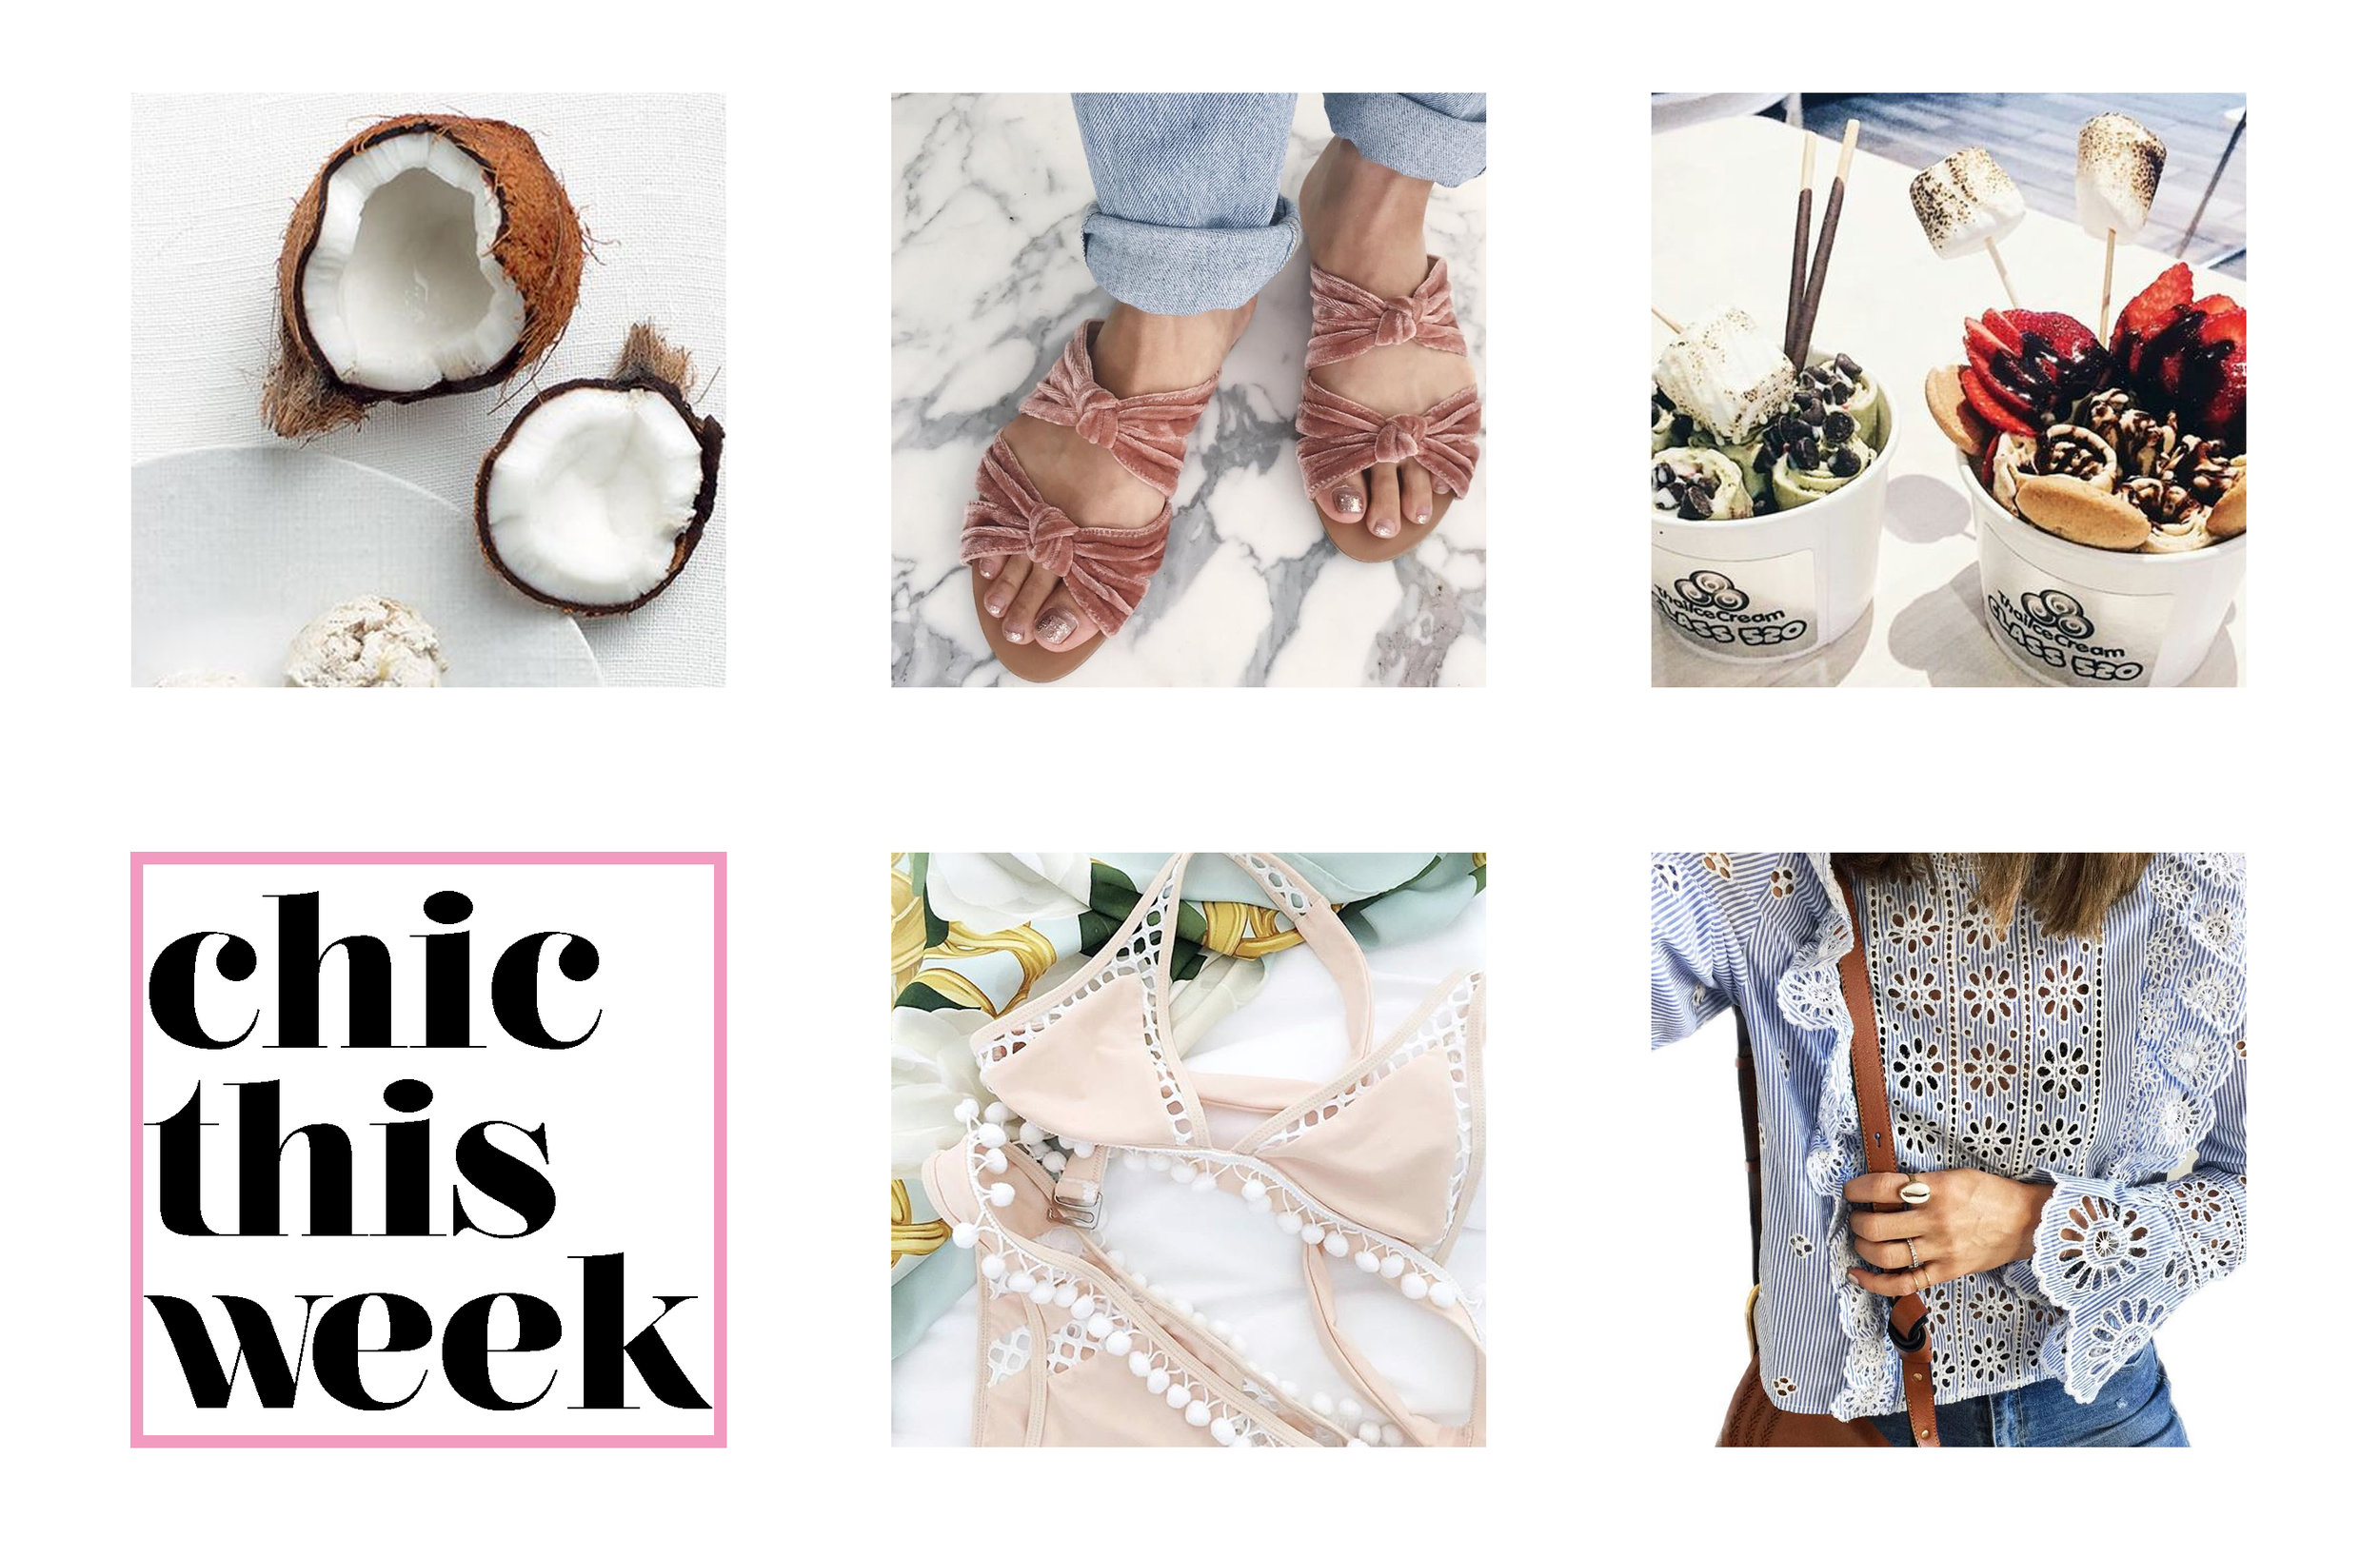 What's chic this week (V 041)